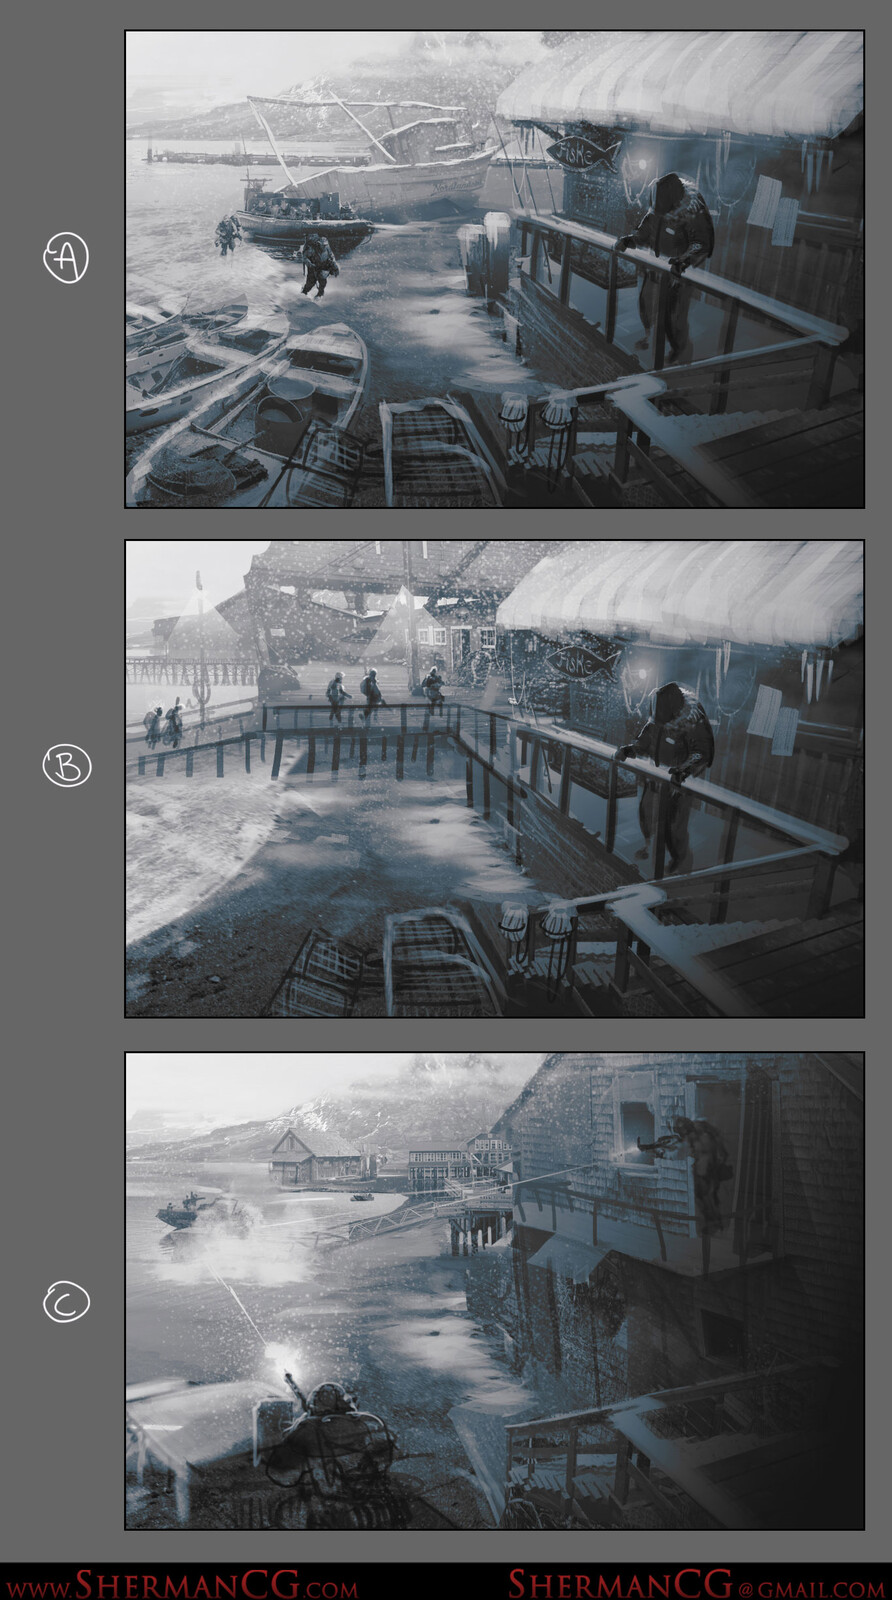 Early thumbnail exploration, mostly used for discussion on what the concept task asks for